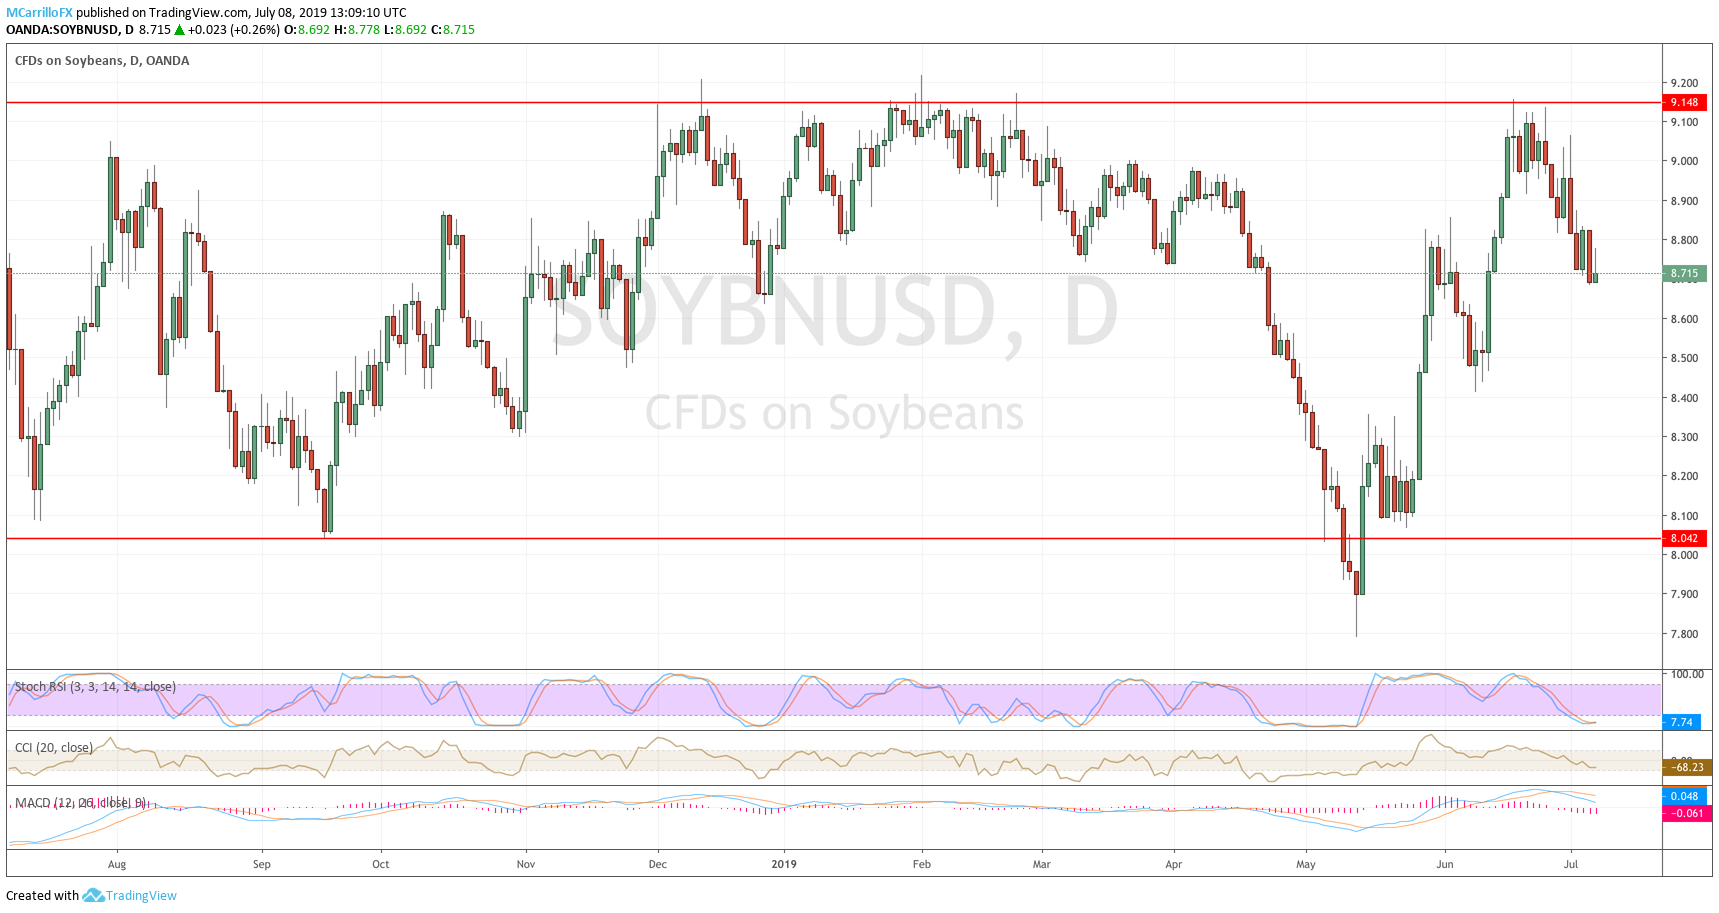 Soybean rices daily chart July 8